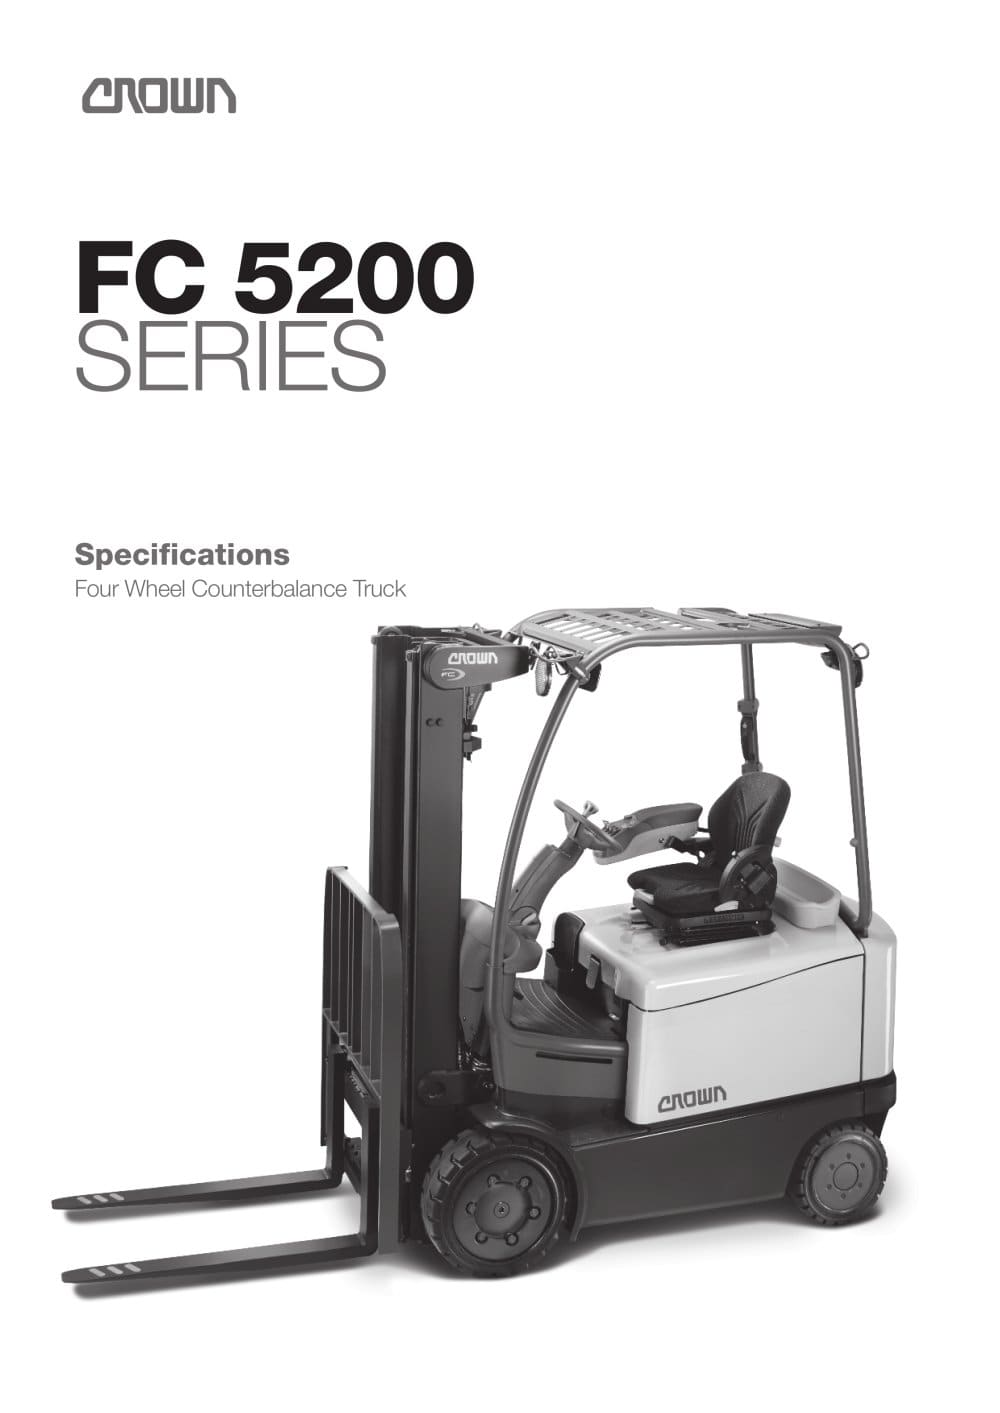 medium resolution of forklift fc 5200 1 10 pages